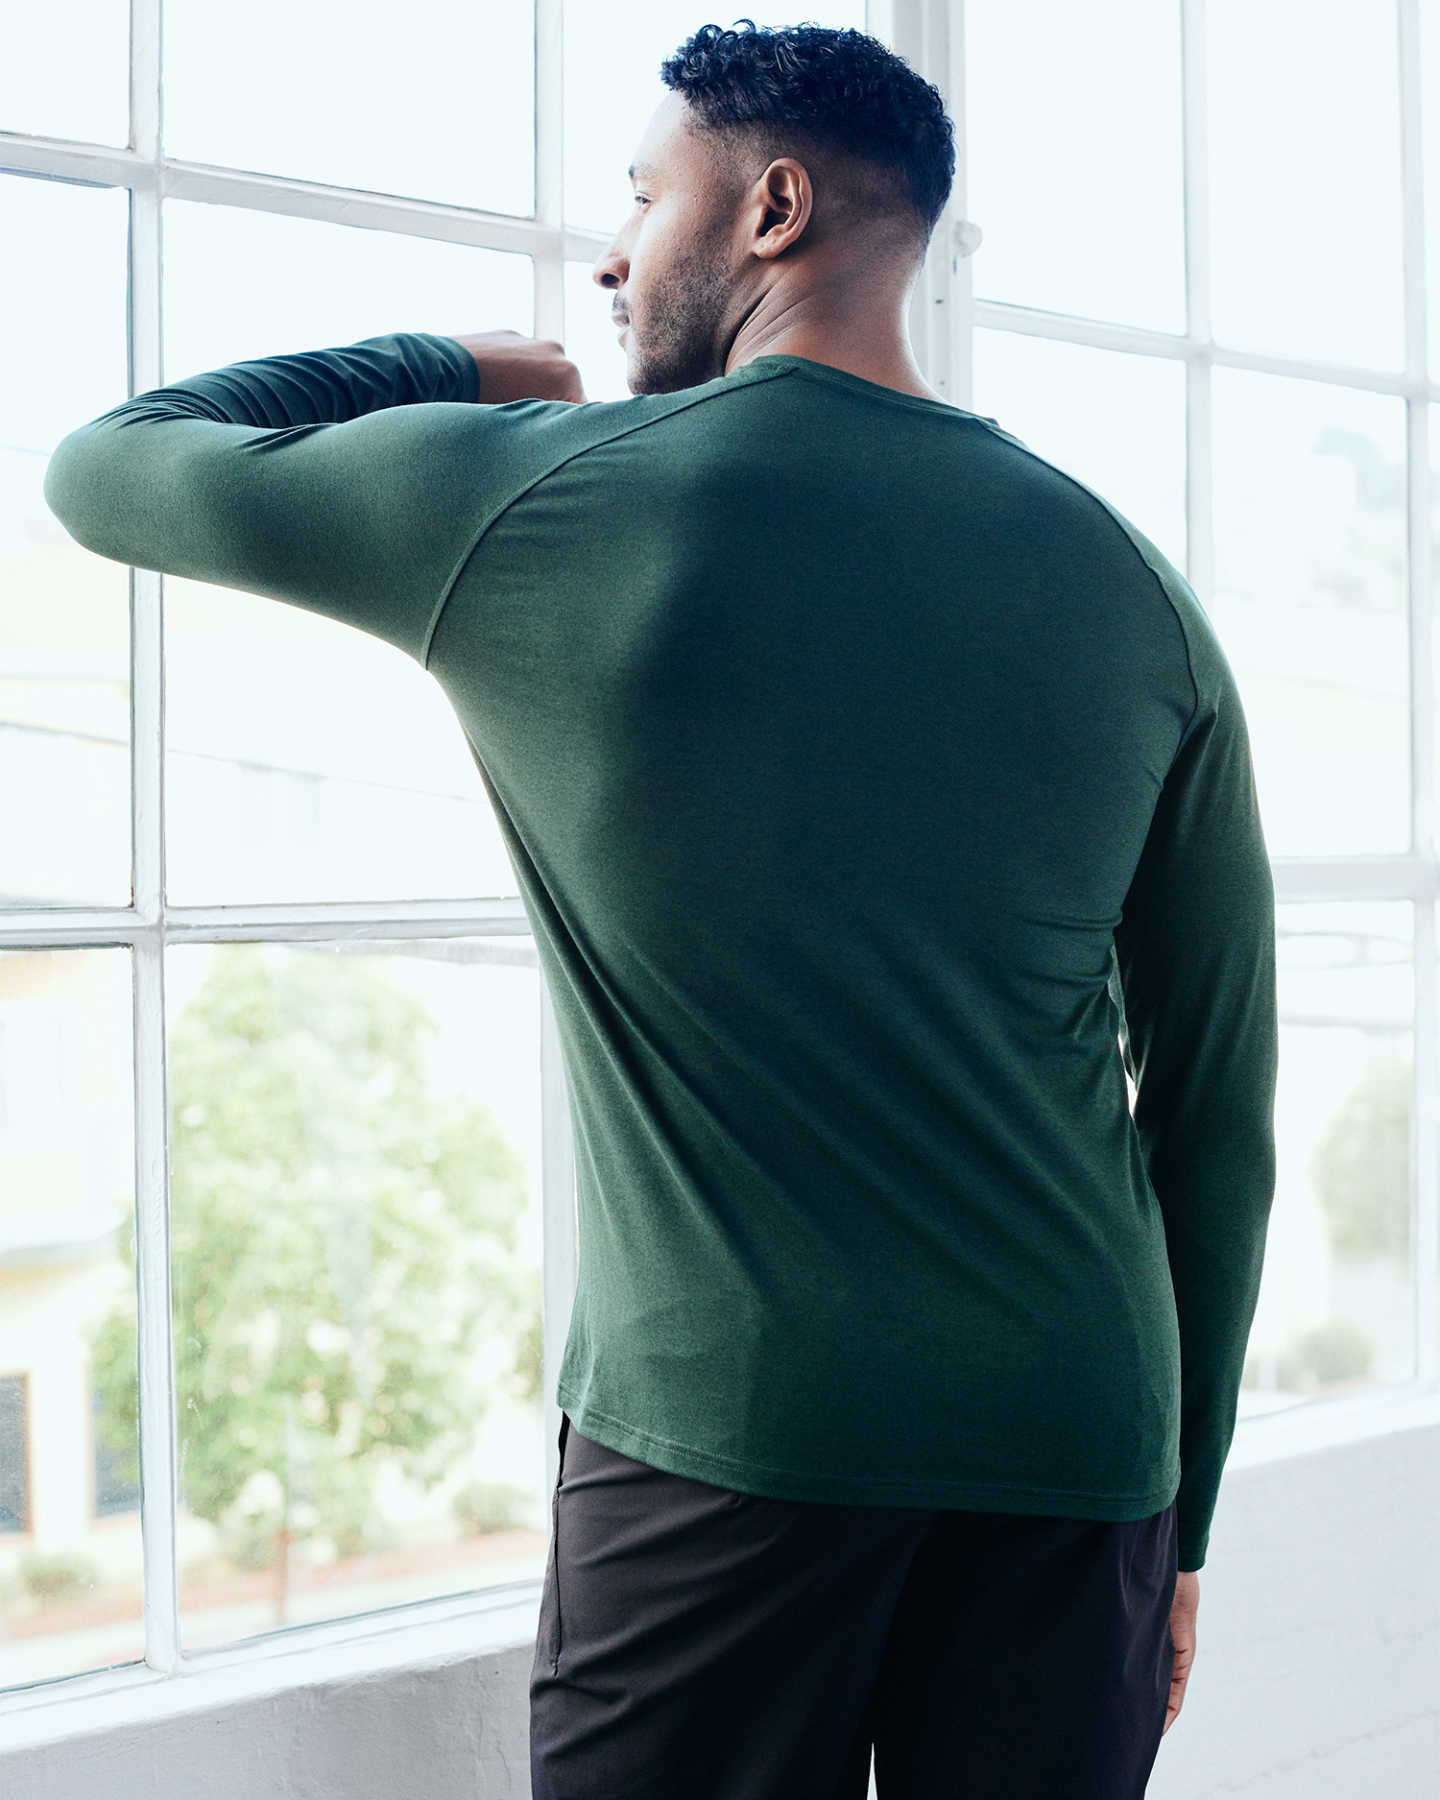 Flowknit Ultra-Soft Performance Long Sleeve Tee - Olive - 5